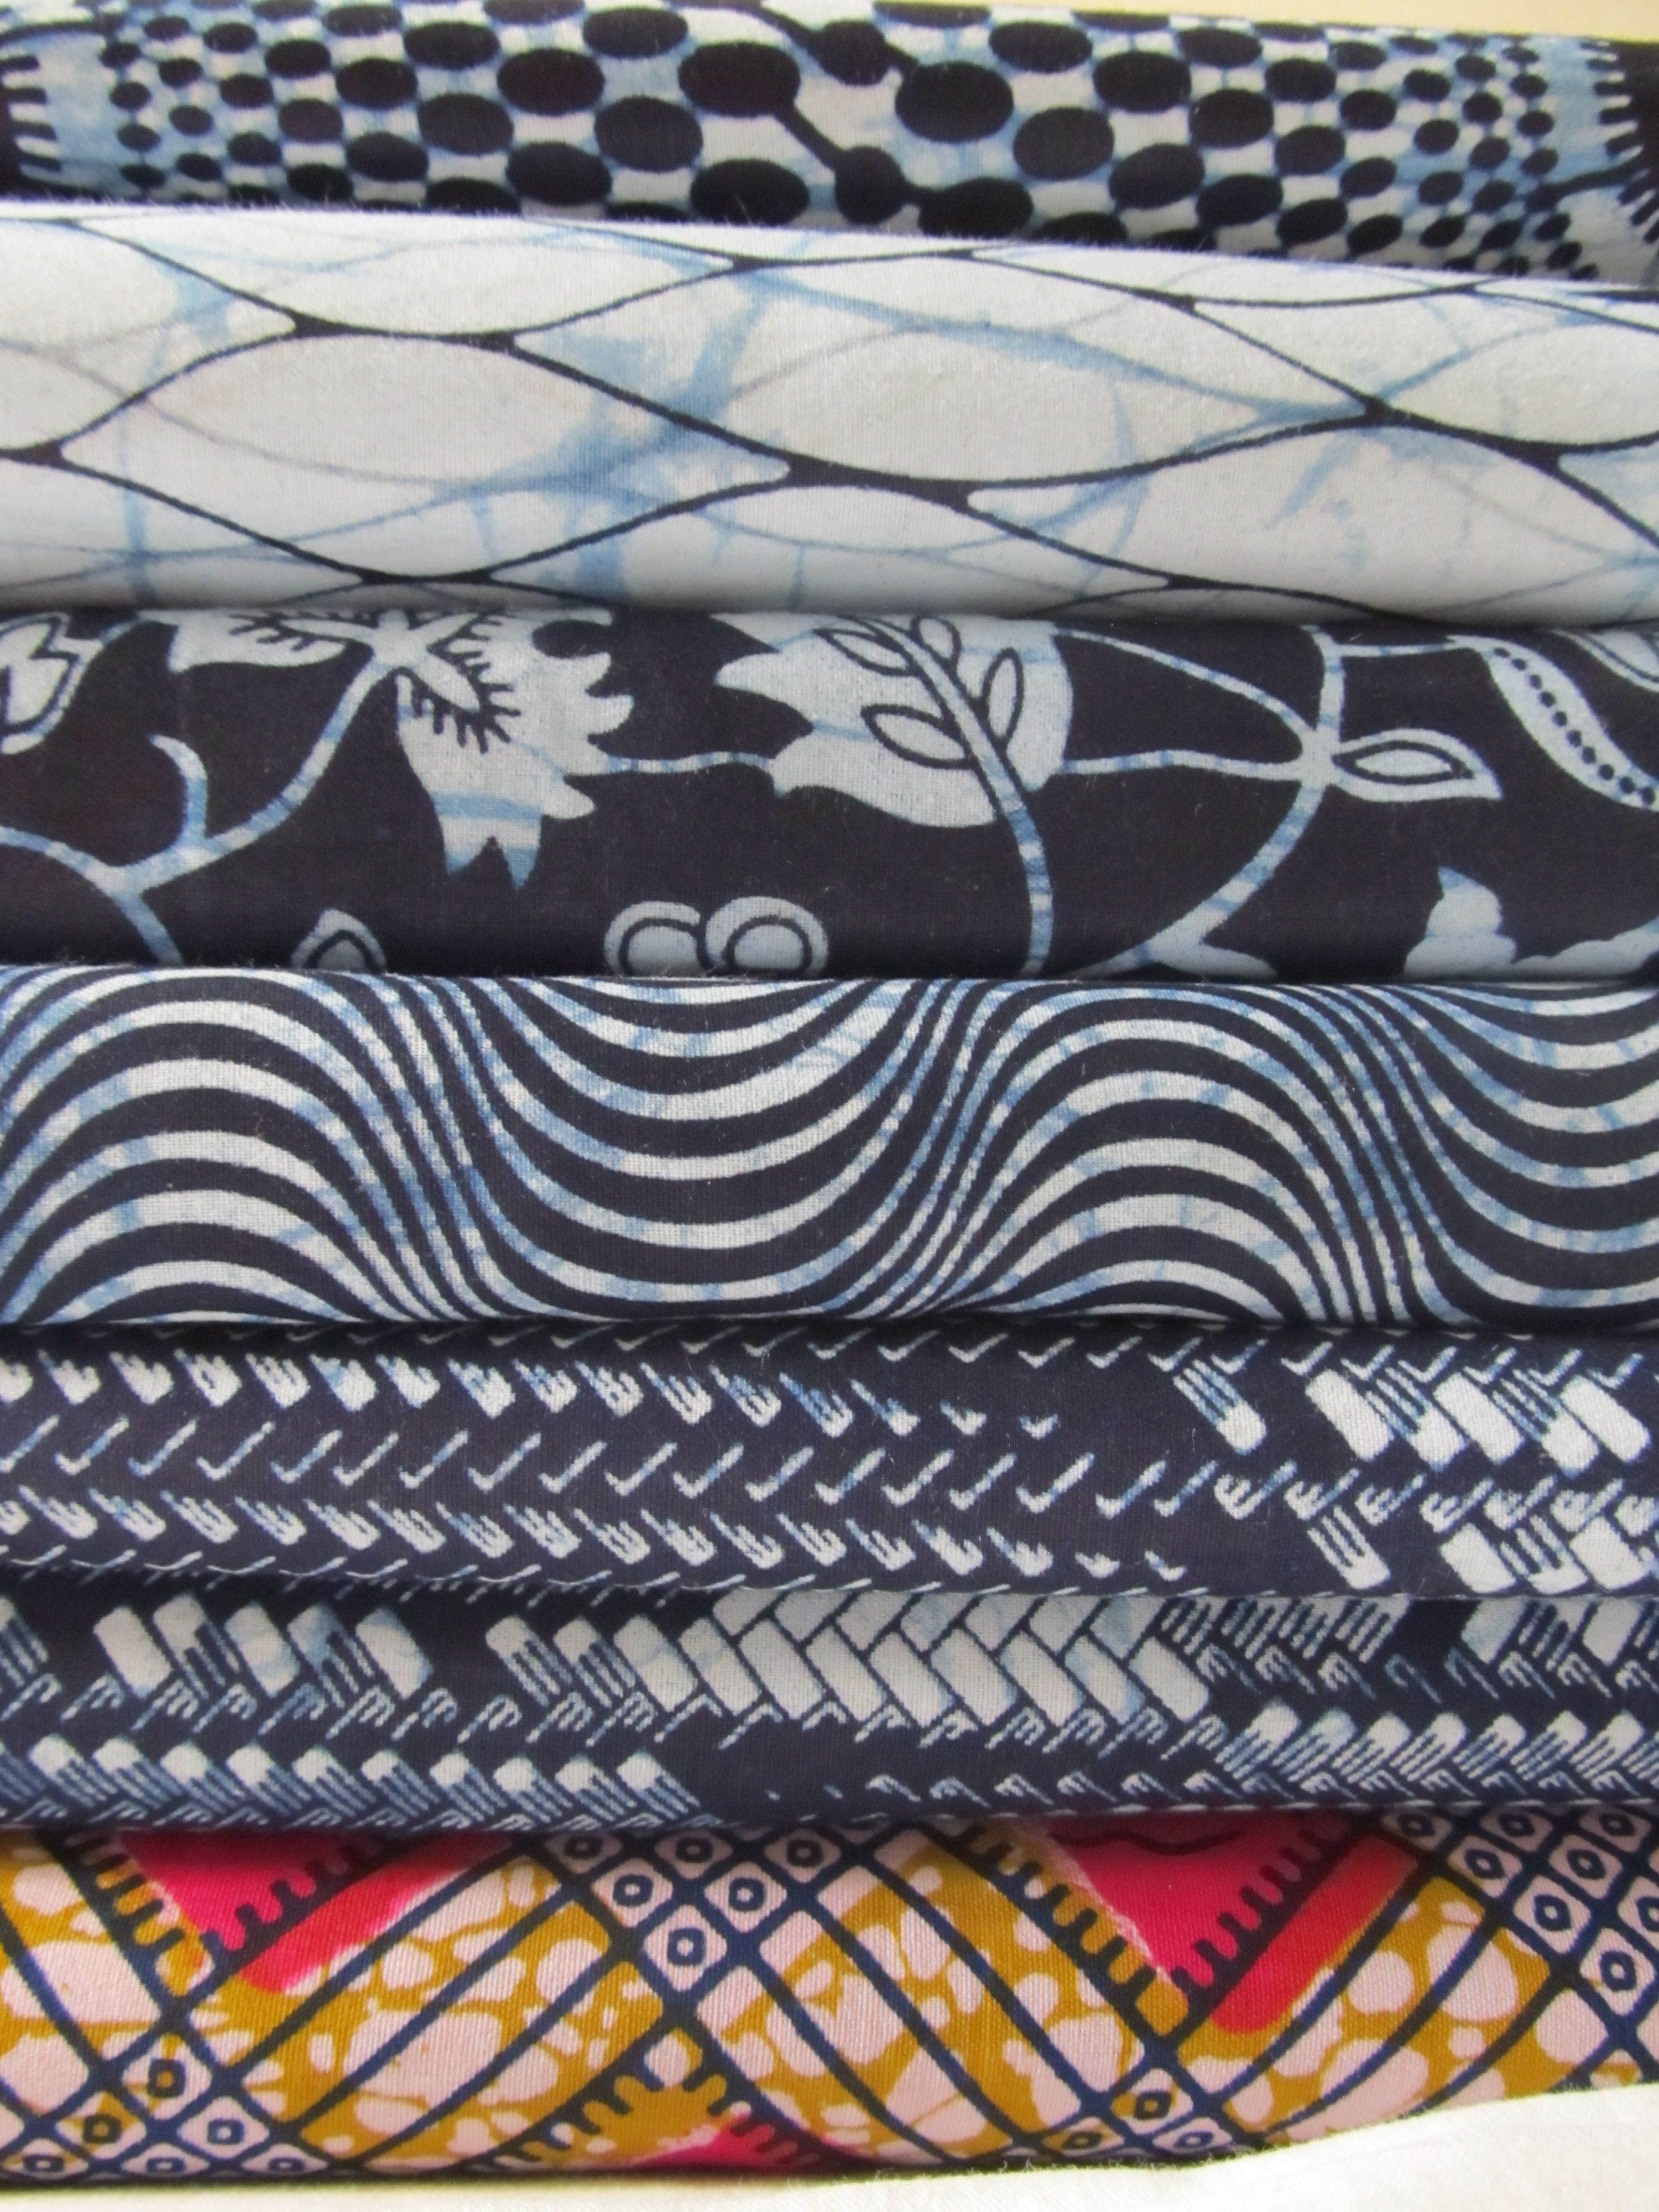 west african fabric - photo #20